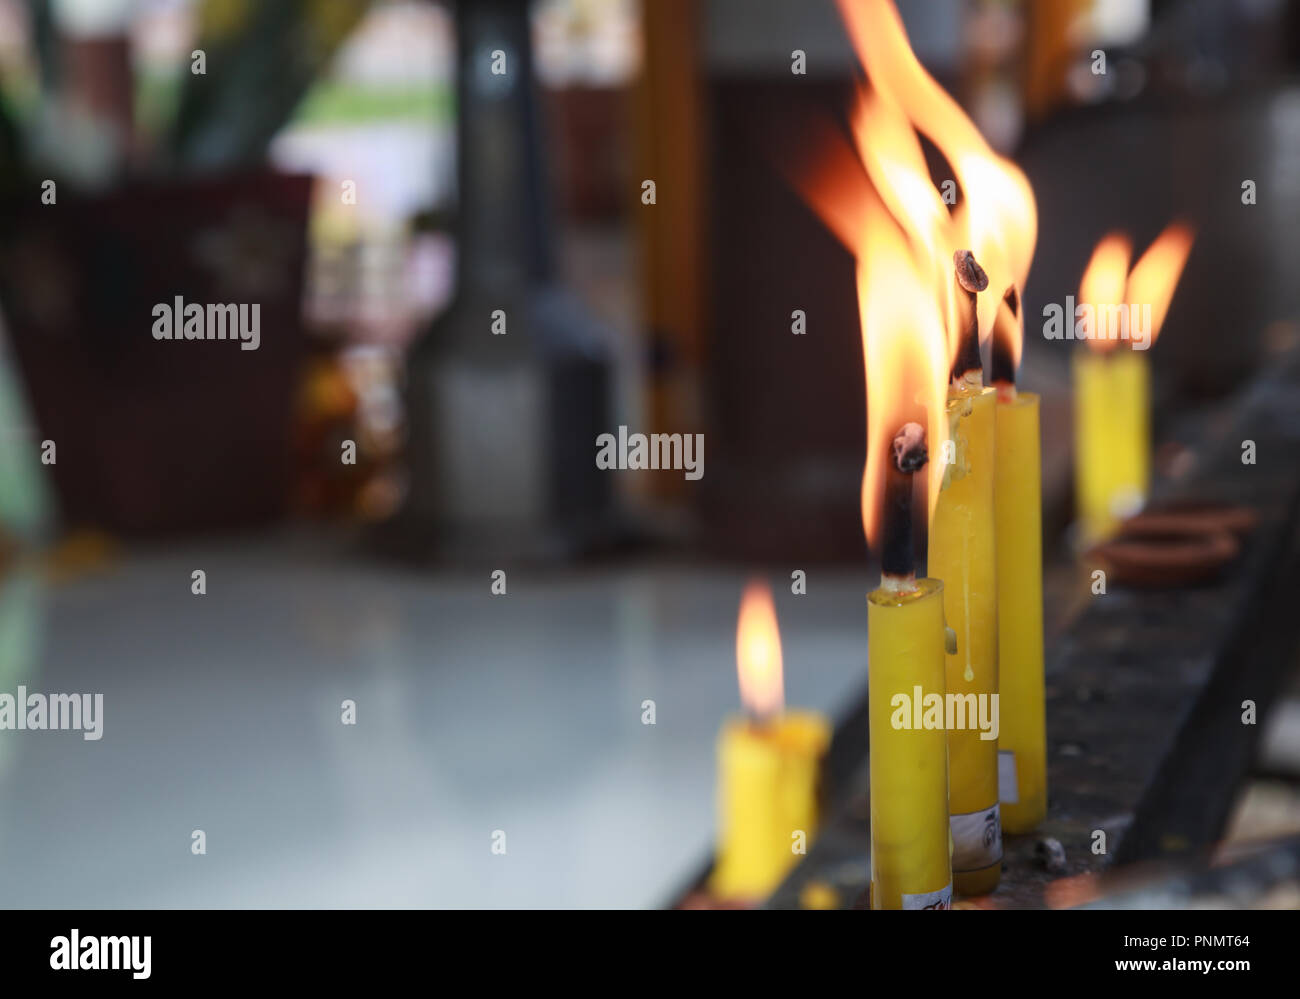 Yellow Candlesticks lit on the prayer shelf in Buddhist Temple Shrine. Buddhism, Asian traditional religious ceremony, Rituals, Making a wish, Meditat - Stock Image